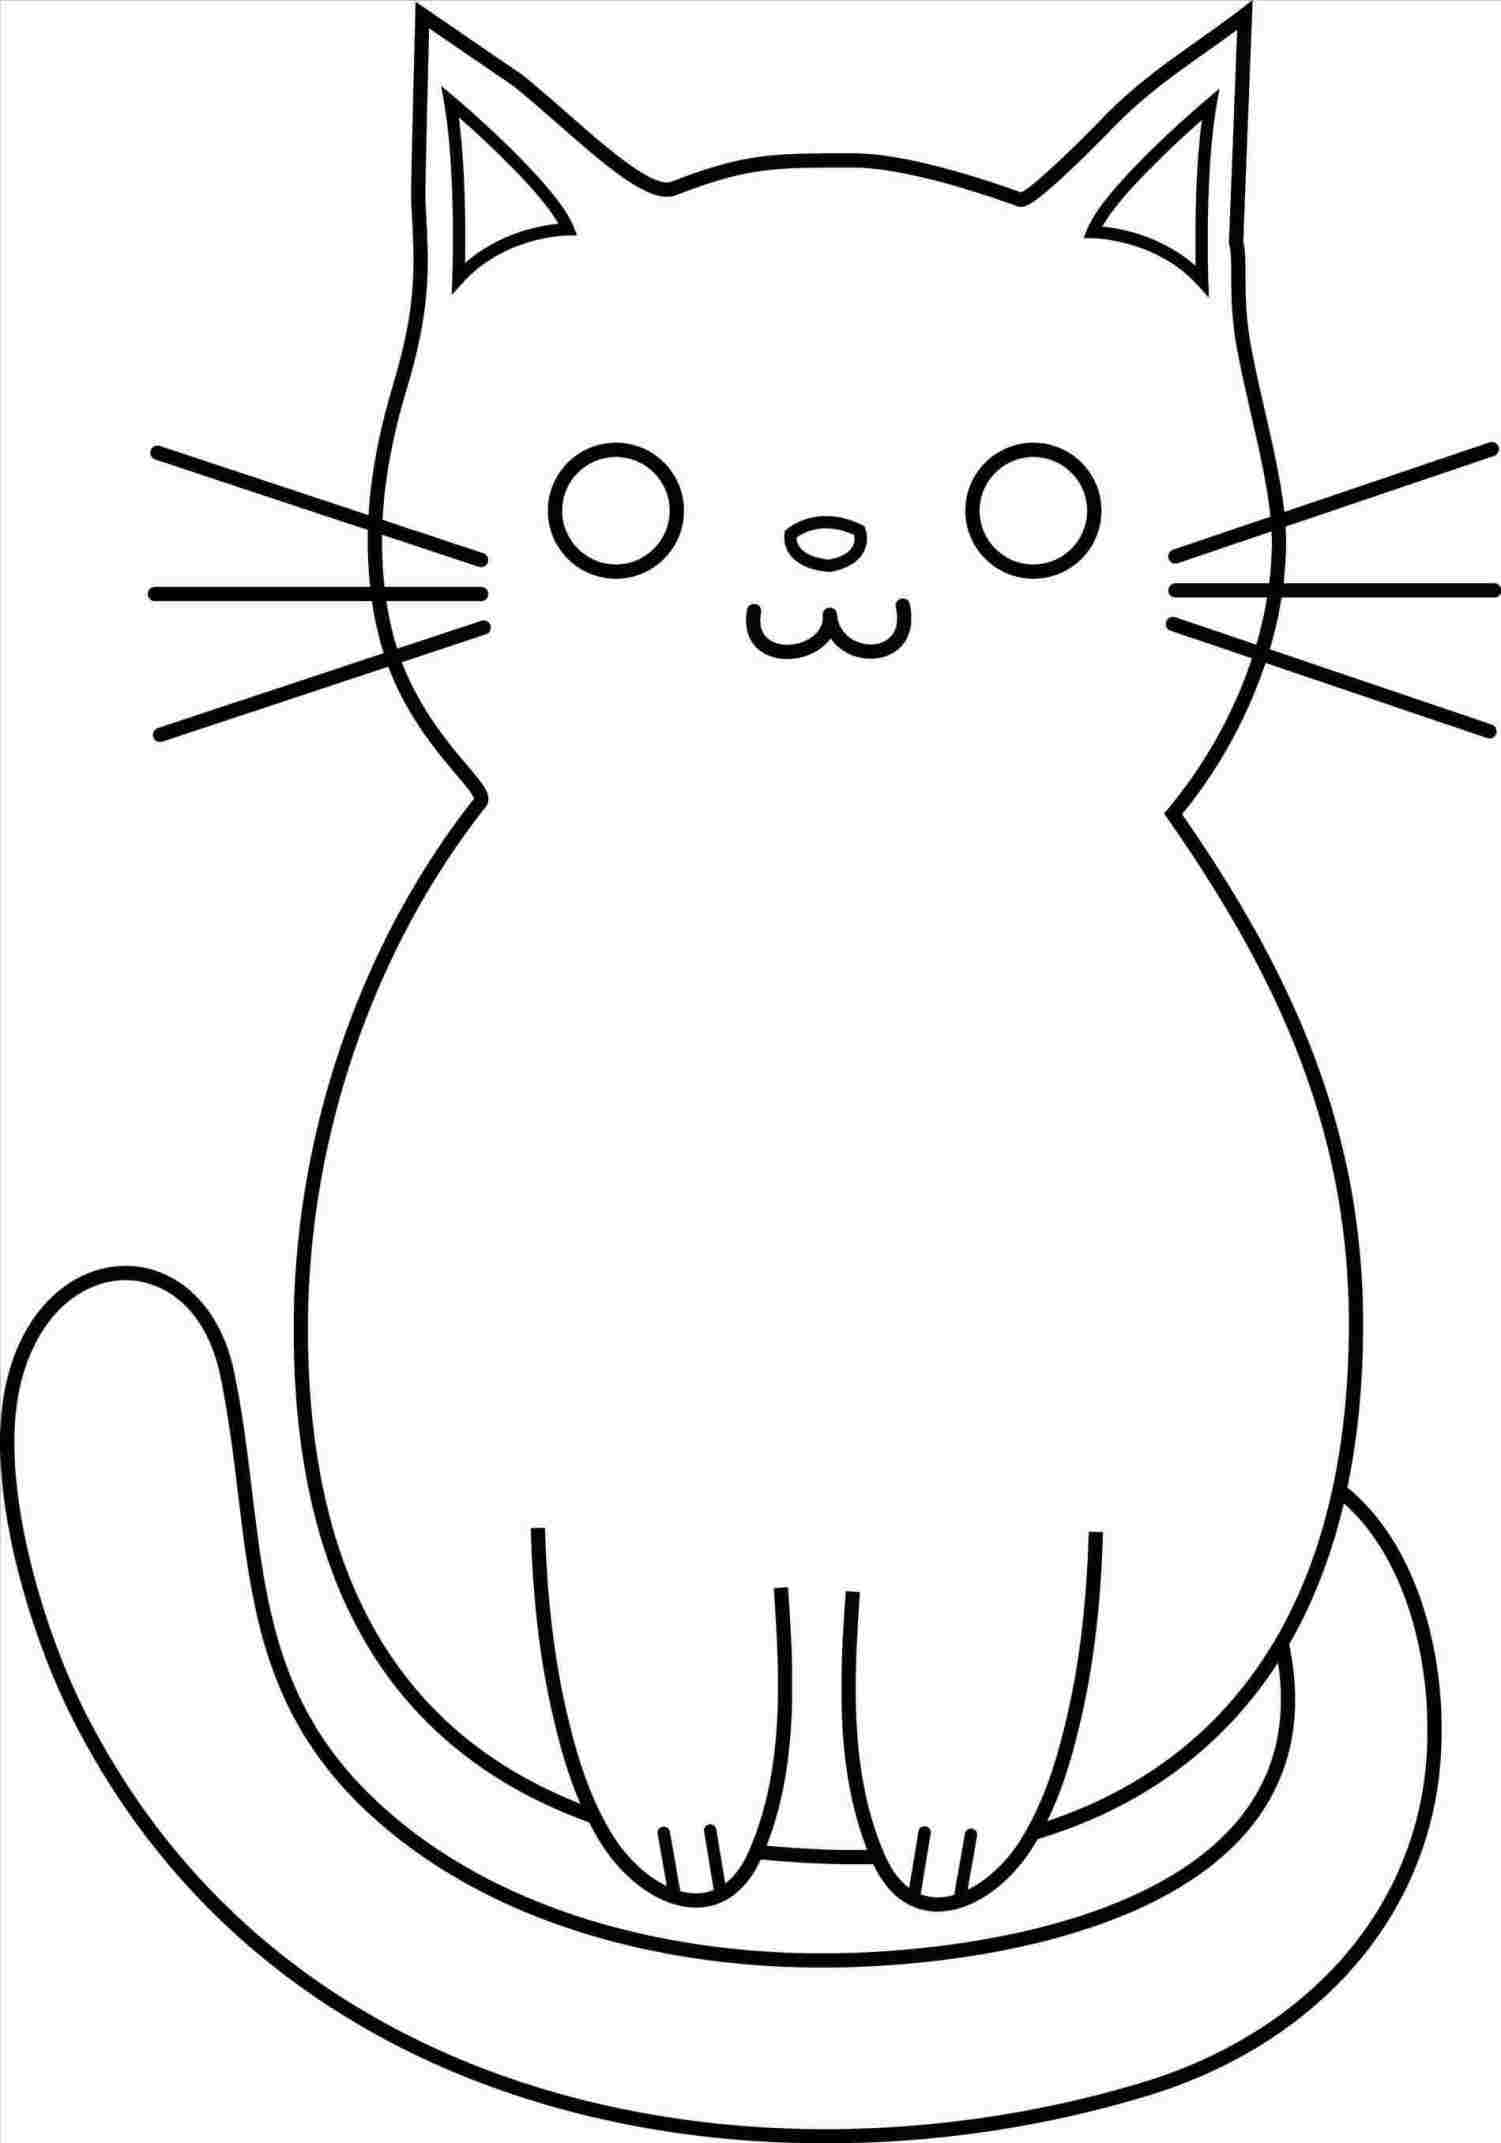 1501x2143 Kitten Drawing To Draw A Speed Easy With Coins Rhyoutubecom